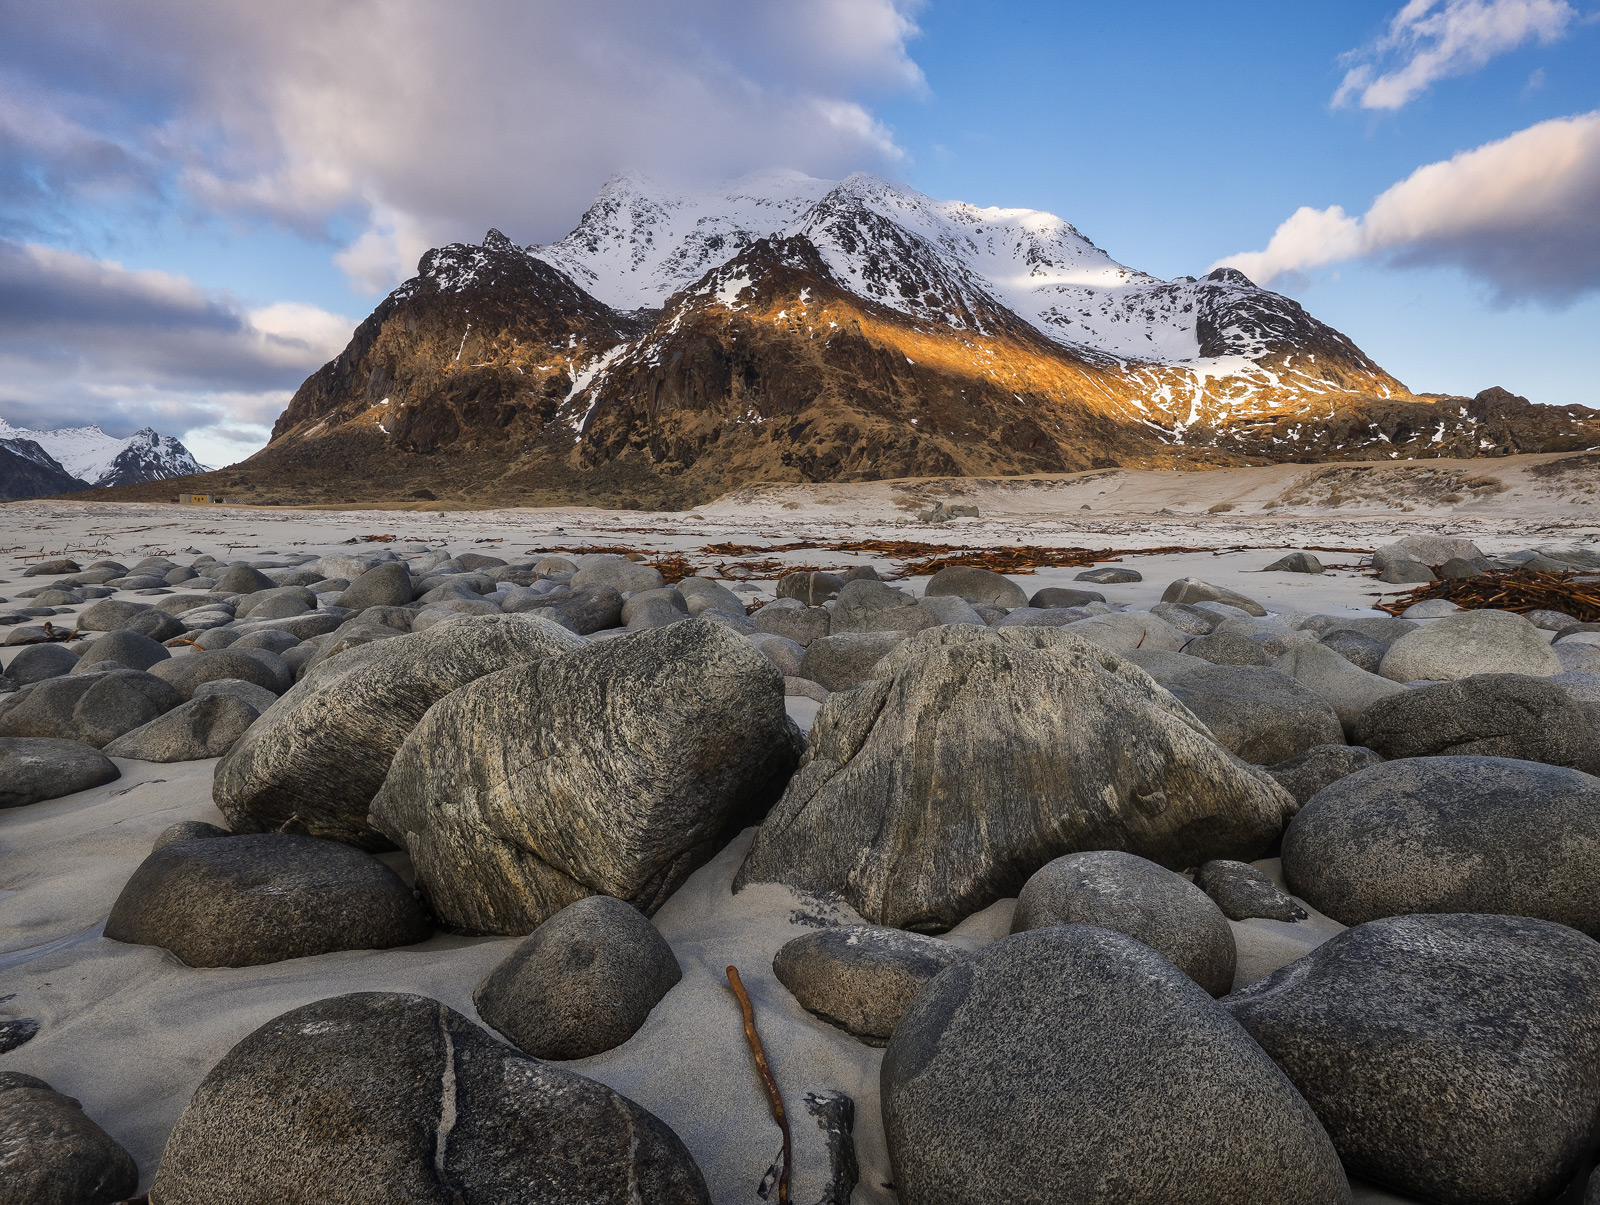 One of the most popular beaches on the Lofoten Islands Uttakliev has some remarkable boulders embedded in the soft sand and the...